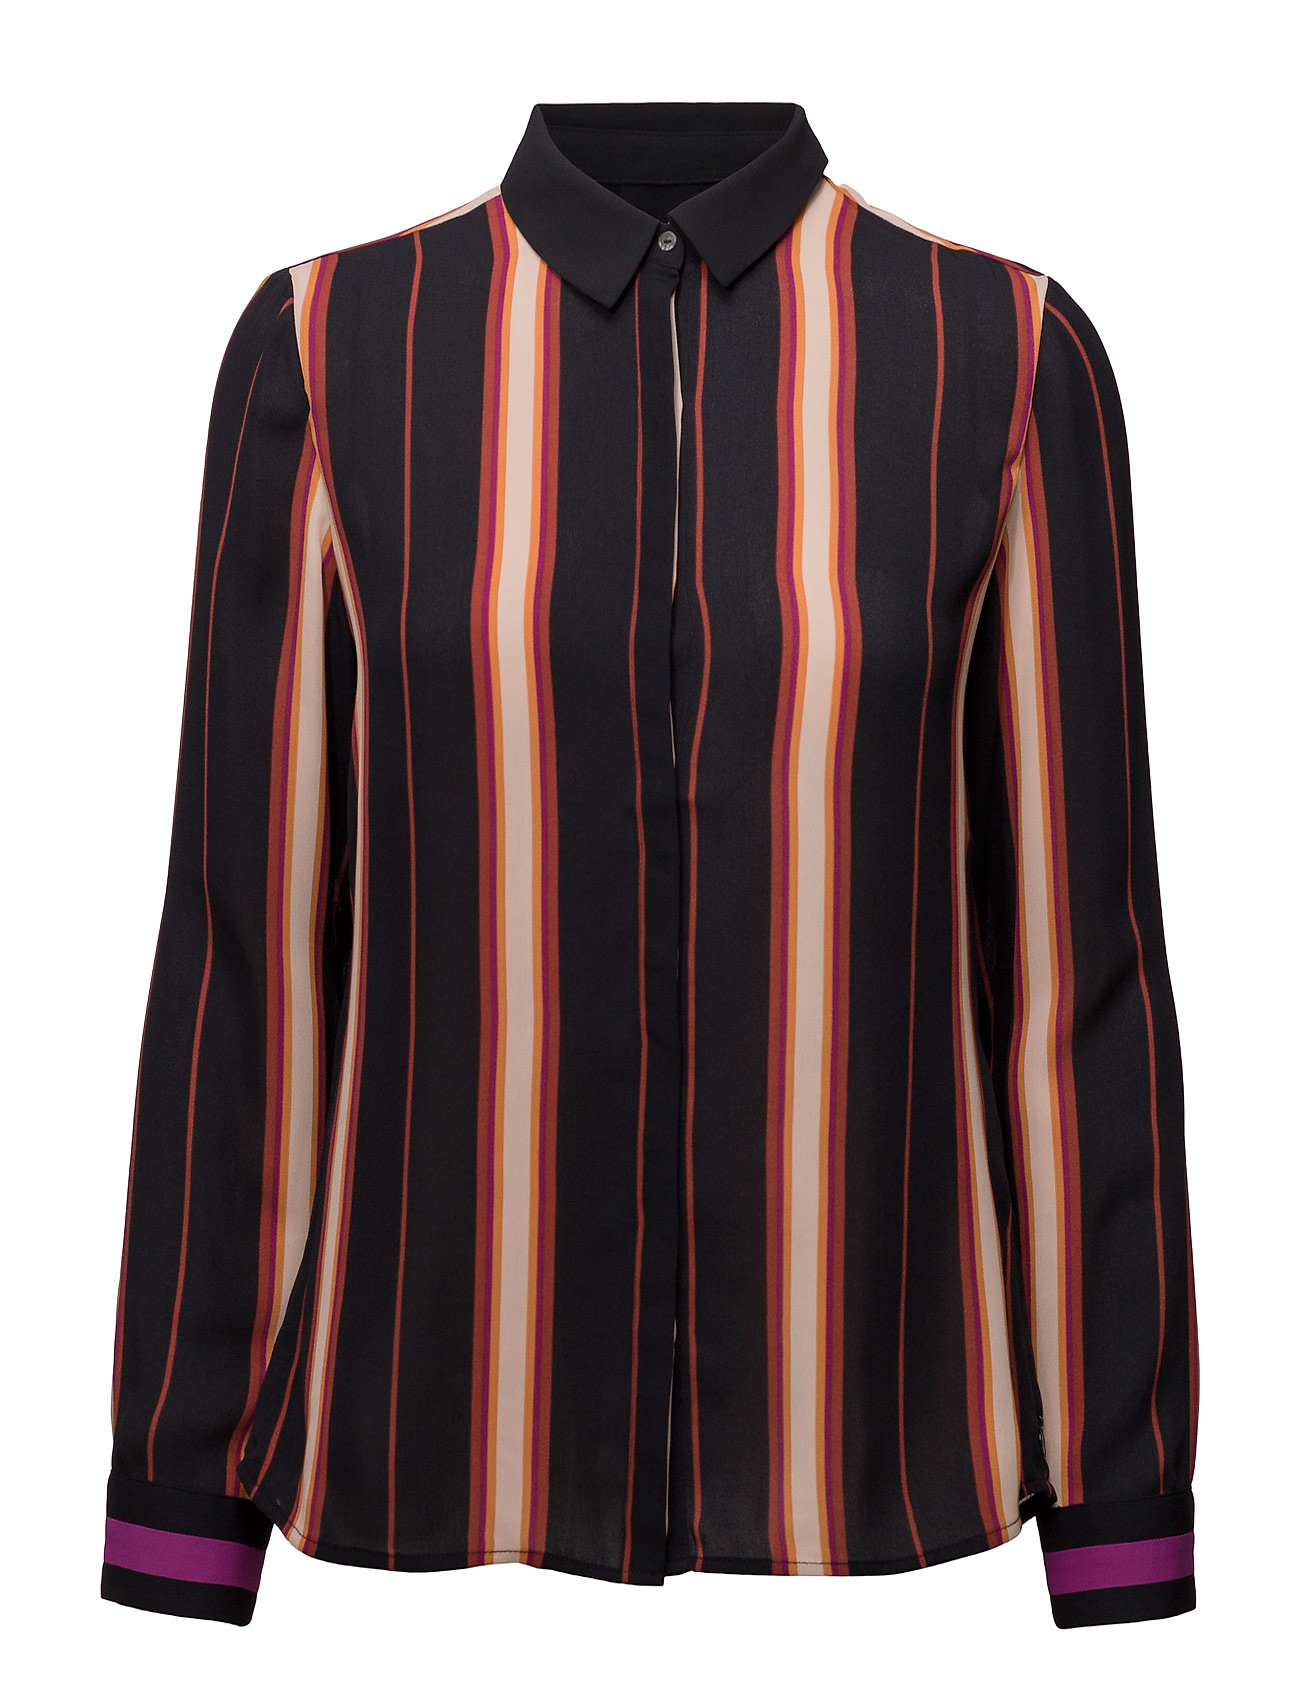 Silky feel button up shirt in stripe or colour block fra scotch & soda på boozt.com dk